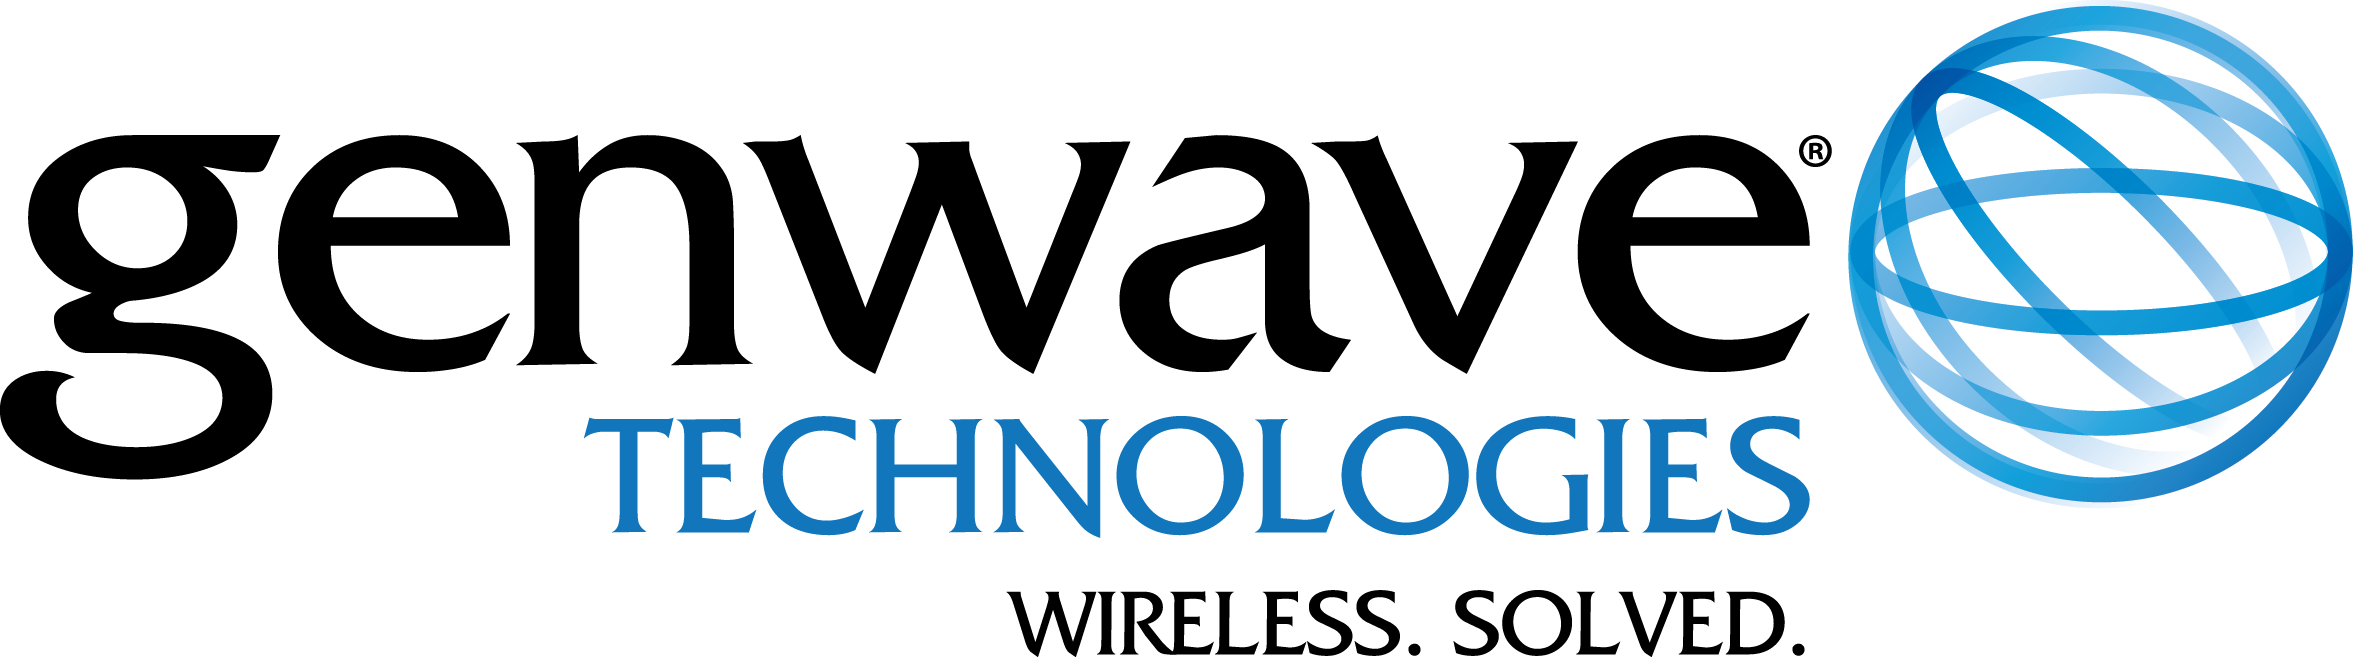 Genwave Technologies Inc.